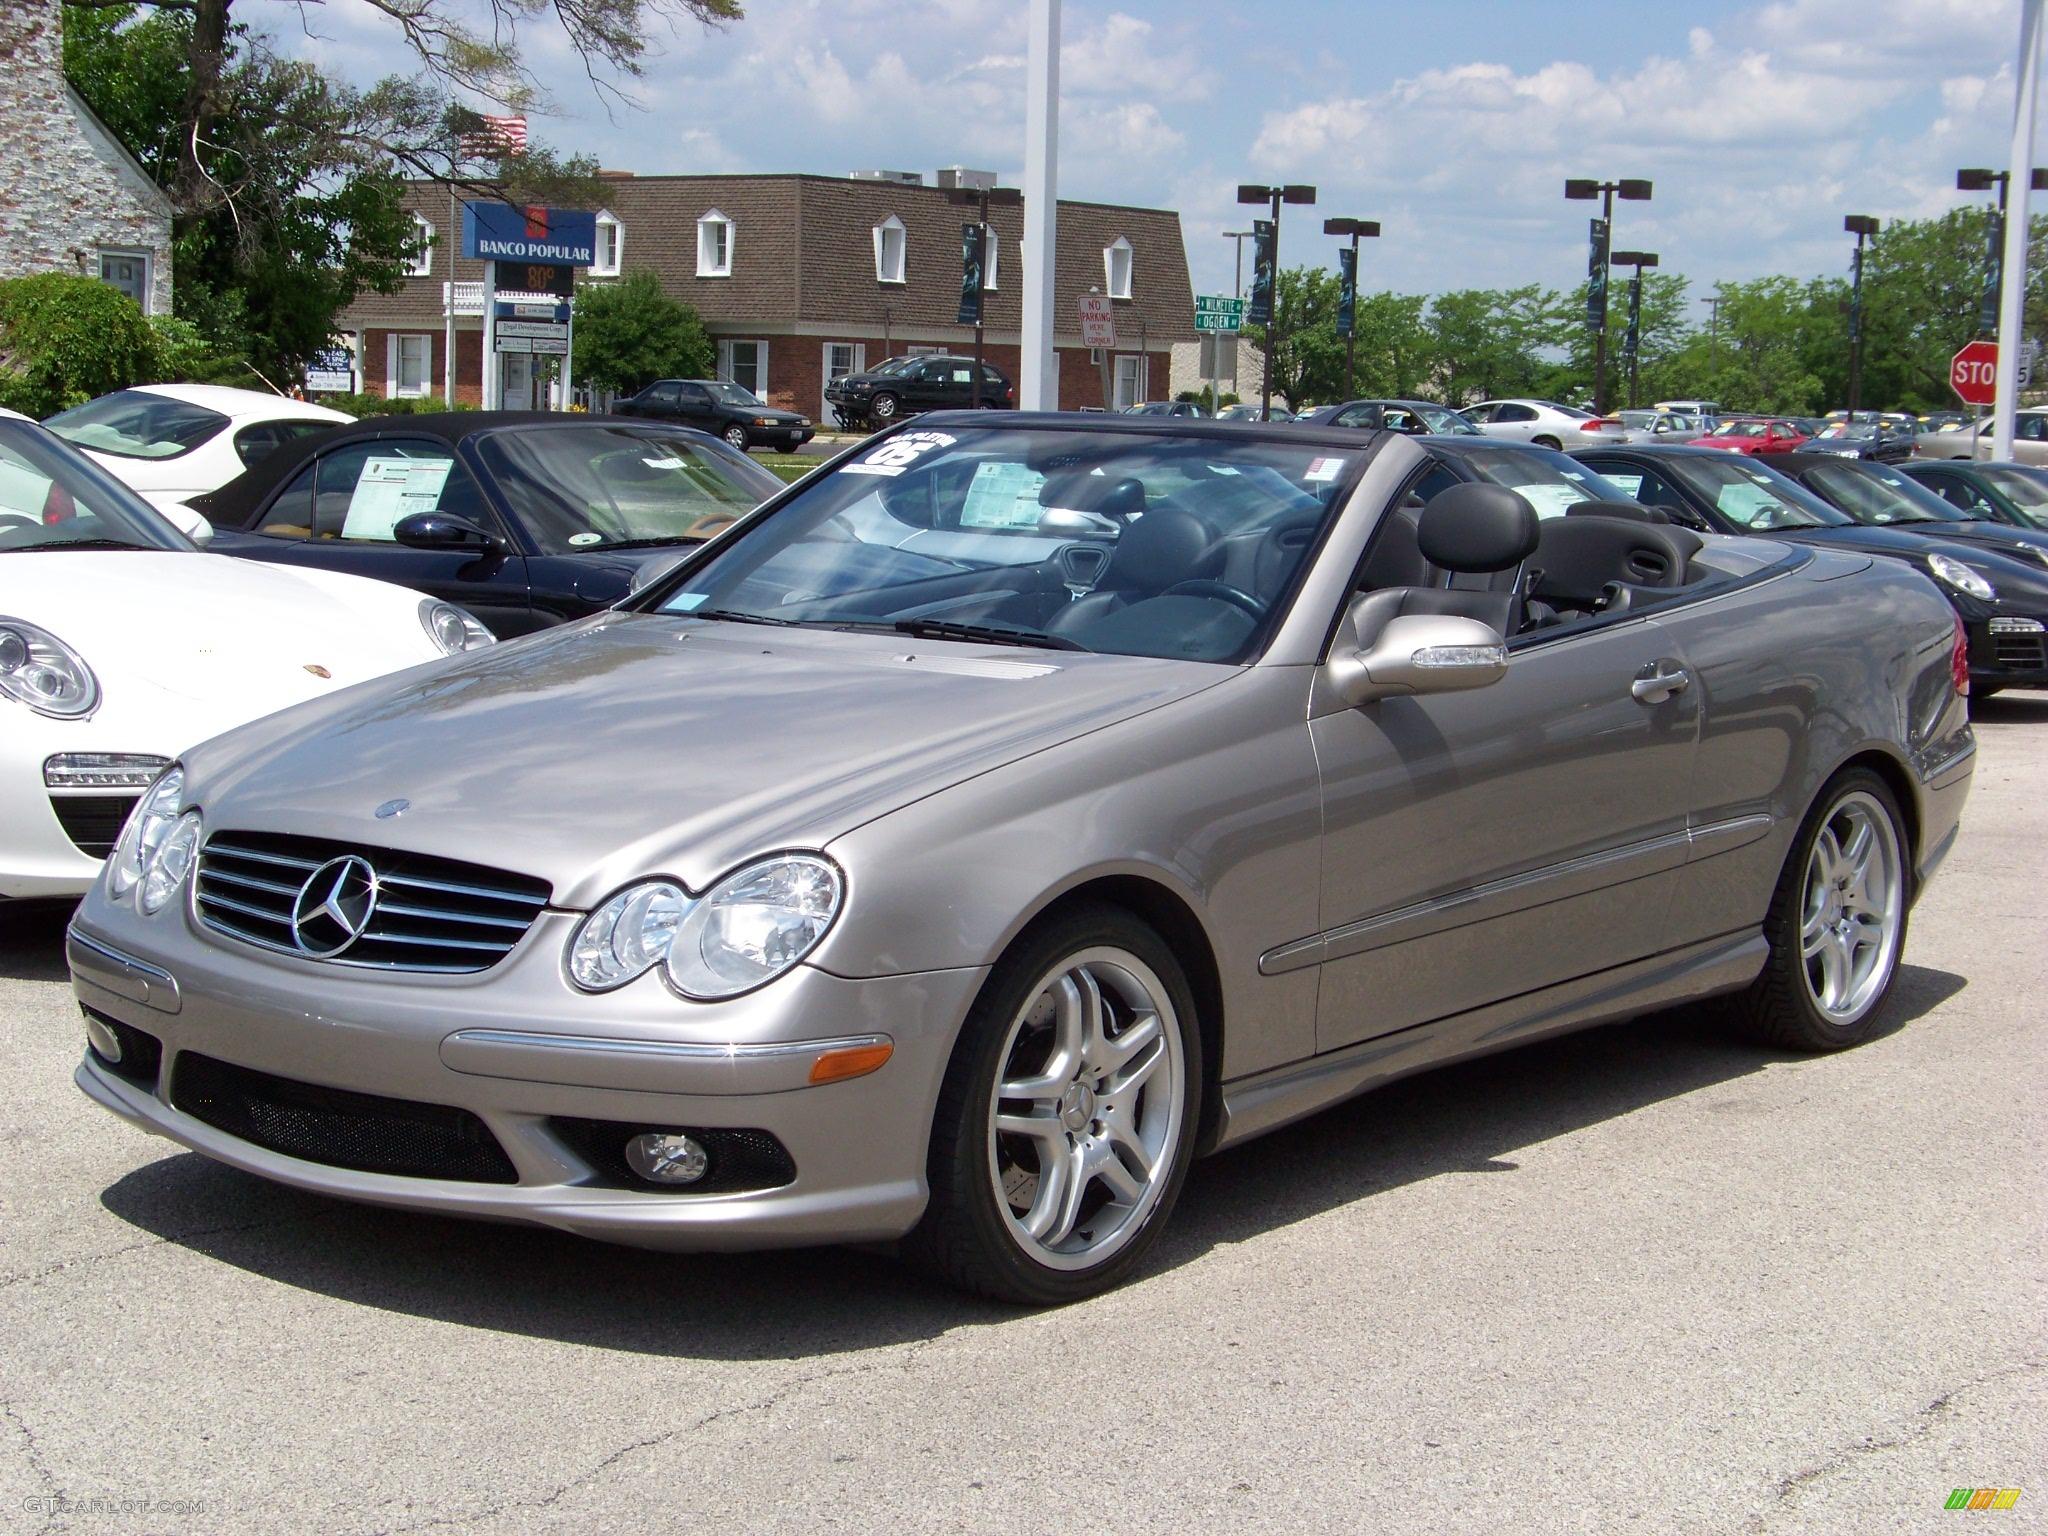 2005 mercedes benz paint colors pictures to pin on for Mercedes benz paint colors